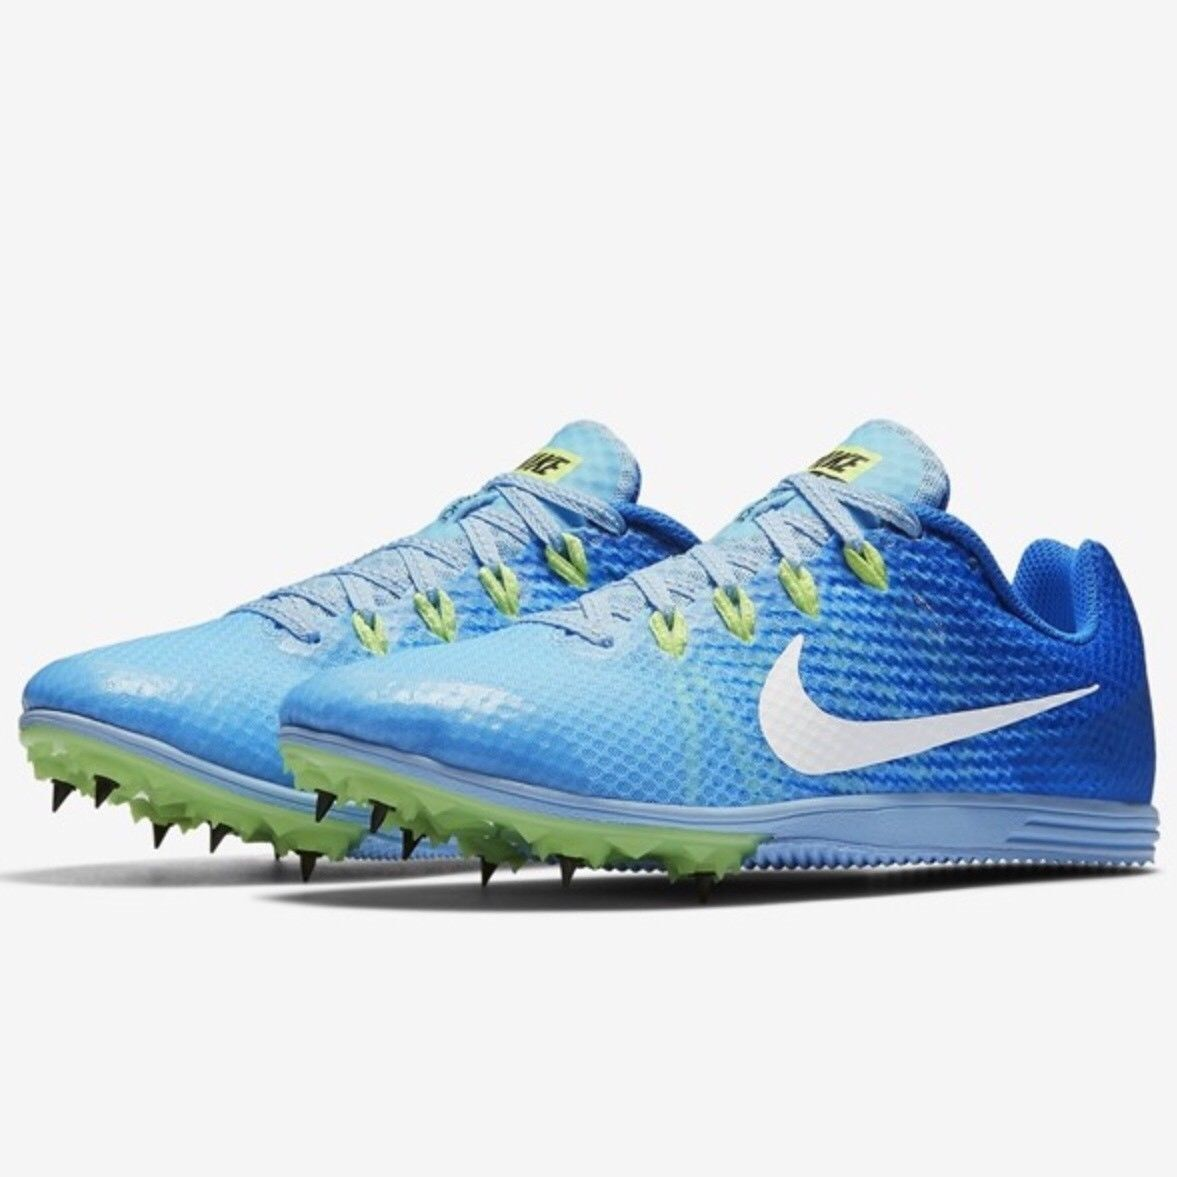 NIKE RIVAL D DISTANCE SPIKES LOW SNEAKER WOMEN SHOES blueE 06560-401 SIZE 10 NEW